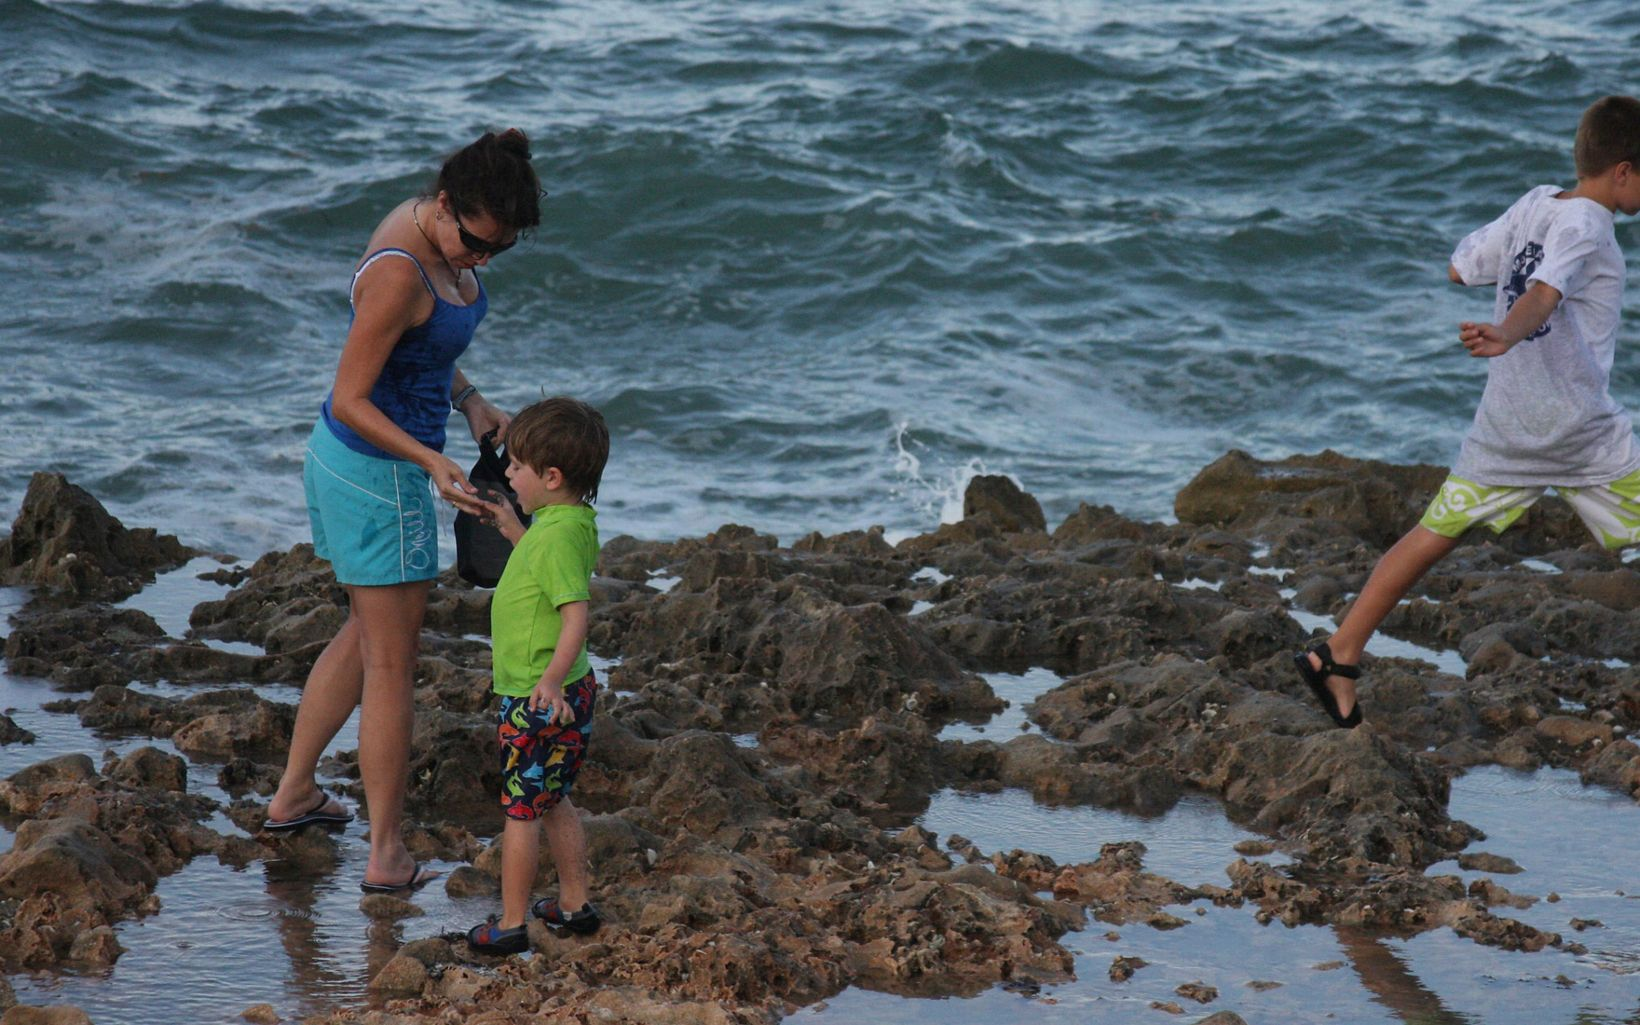 Family enjoying Blowing Rocks Preserve.